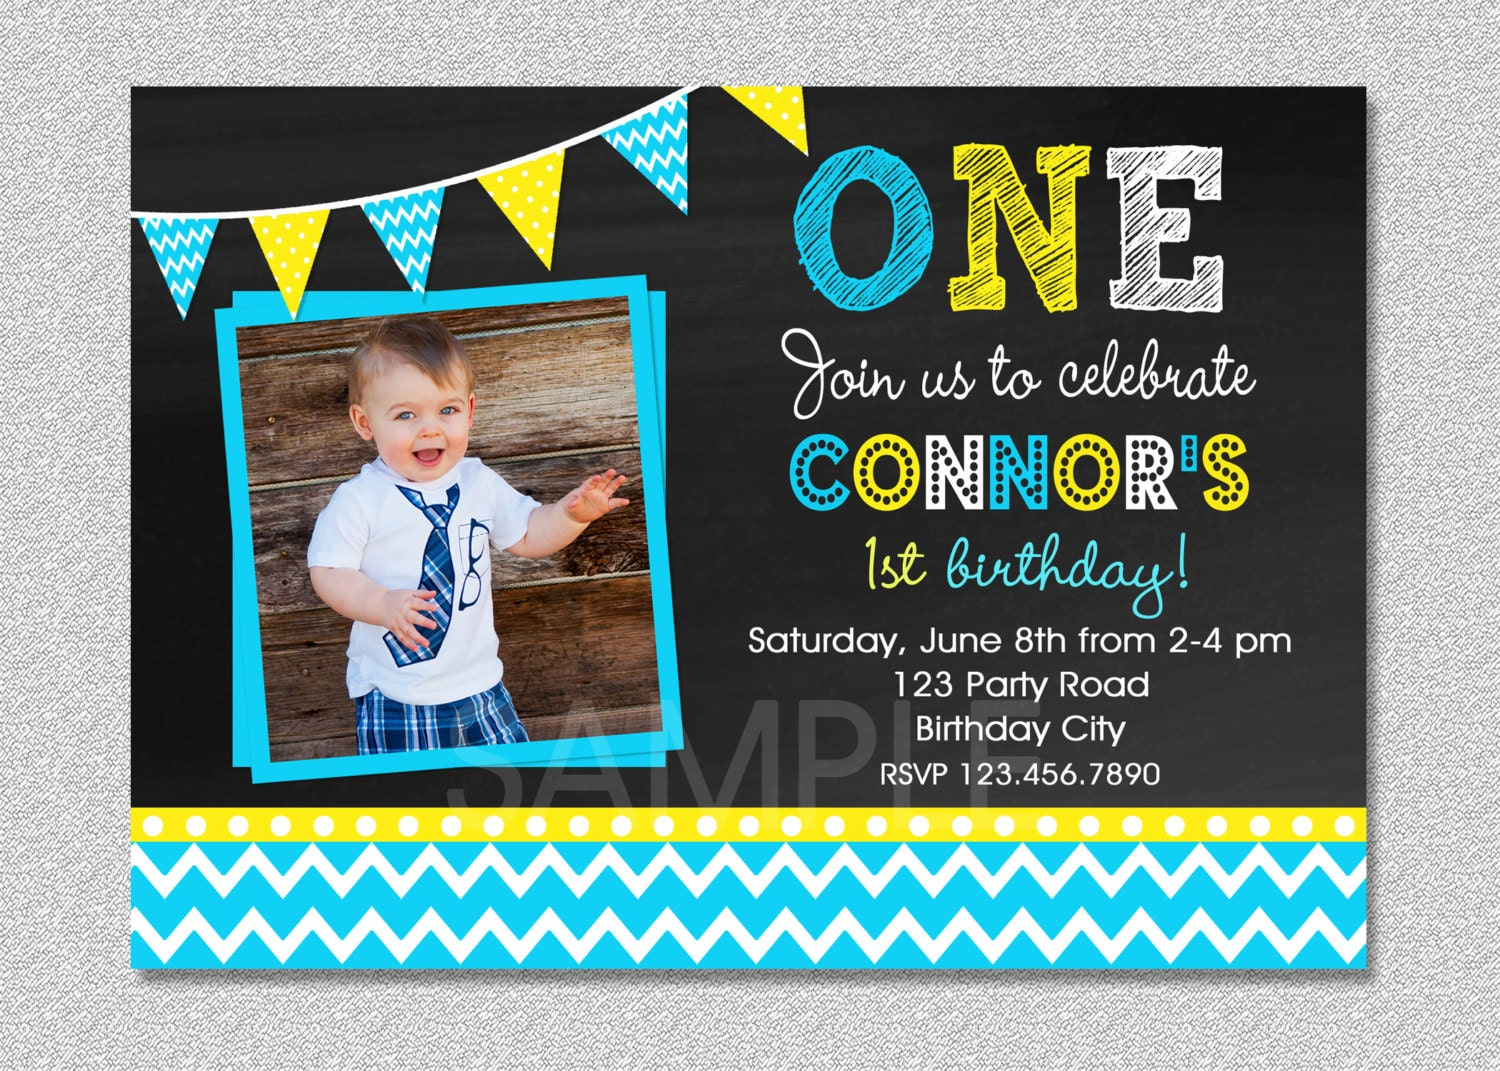 Birthday boy invitations gidiyedformapolitica birthday boy invitations filmwisefo Image collections